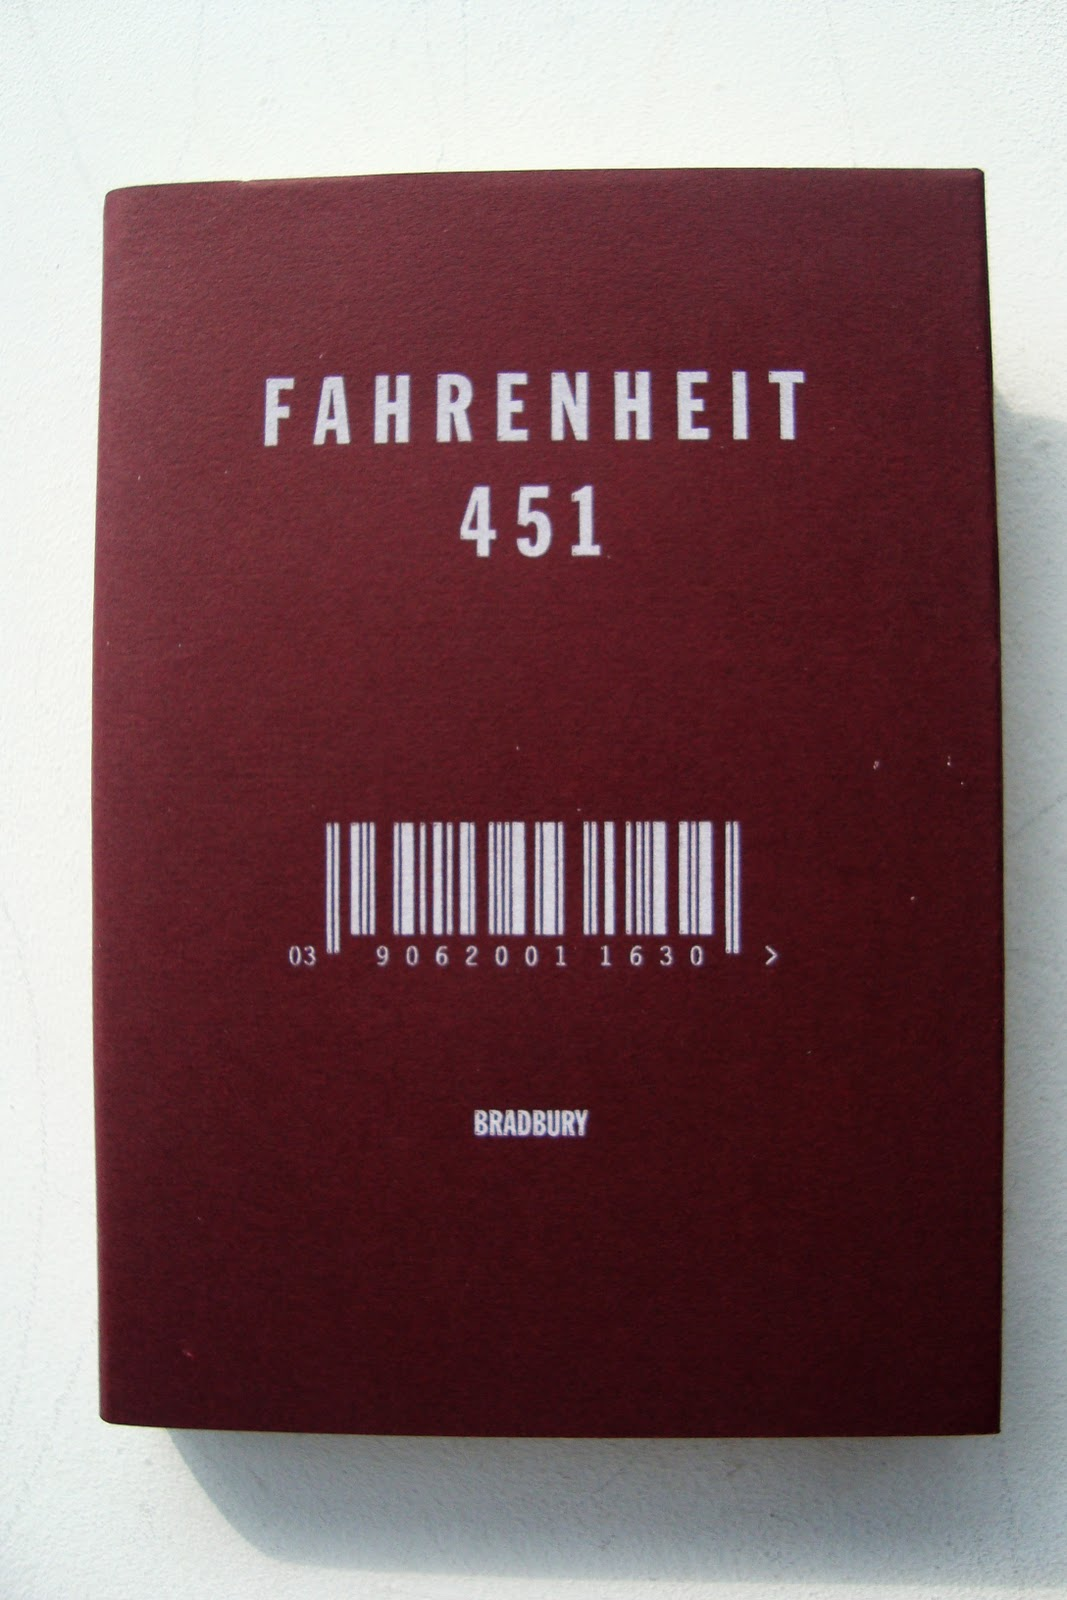 fahrenheit 451 and brave new world Fahrenheit 451 and brave new world fahrenheit 451 and brave new worldfor more than half a century science fiction writers have thrilled and challenged readers with visions of the future and future worlds.